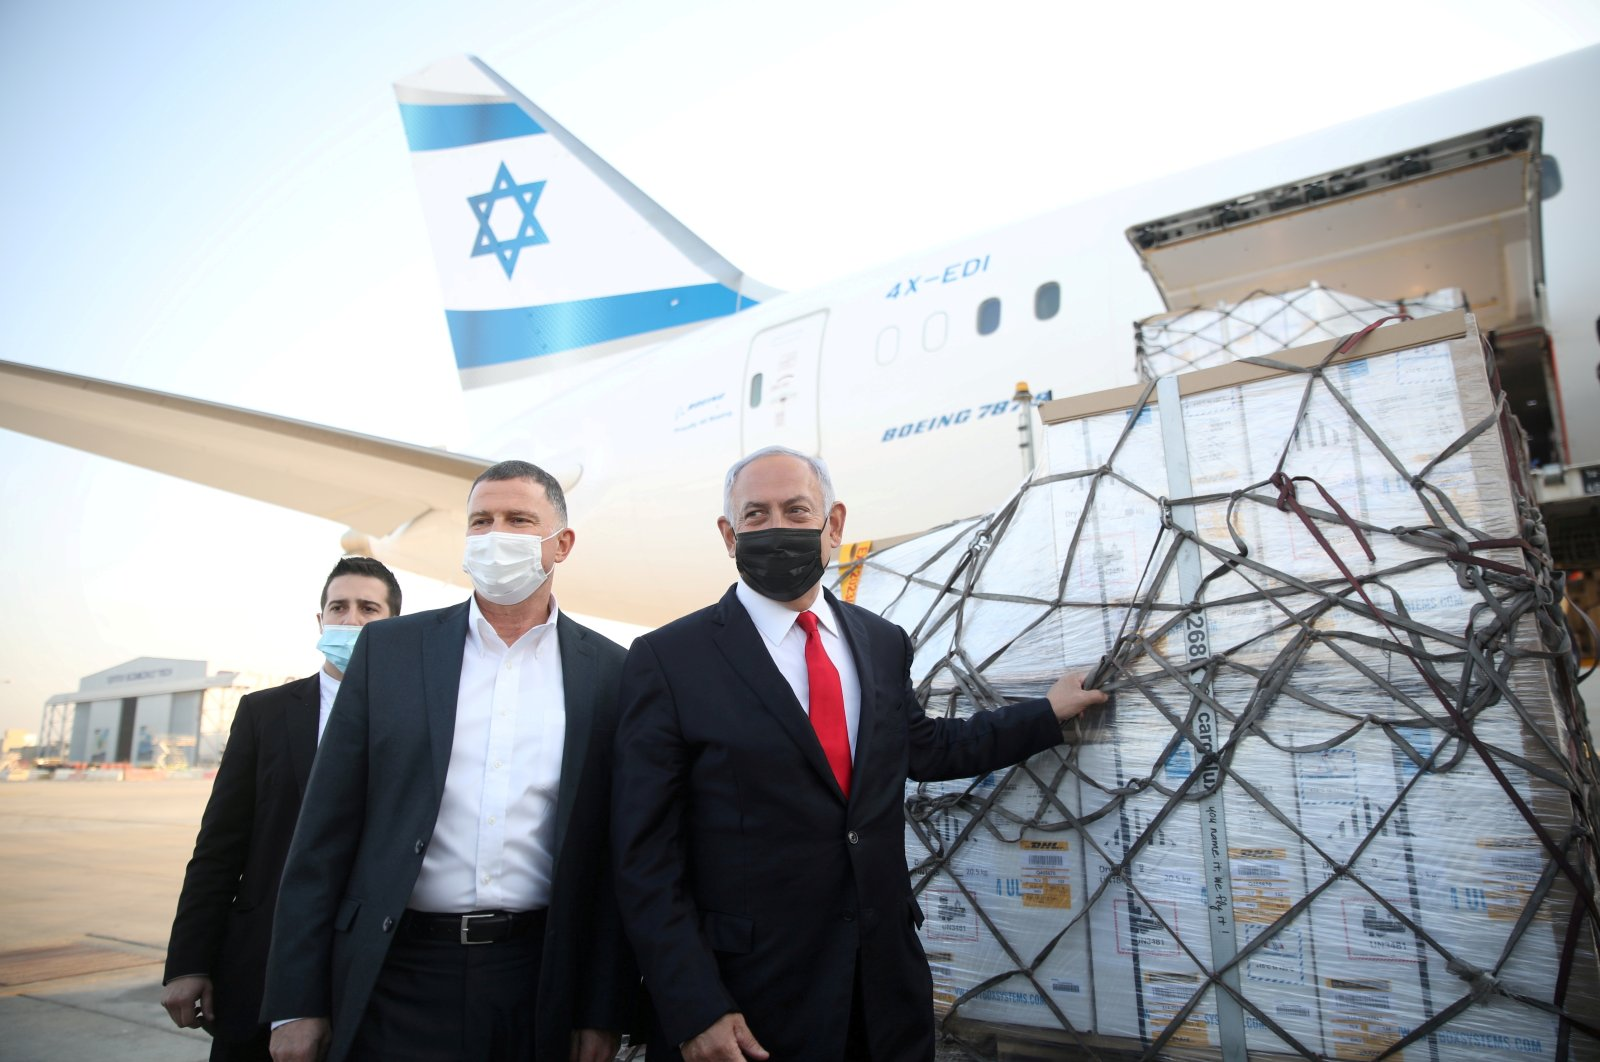 Israeli Health Minister Yuli Edelstein (C) and Prime Minister Benjamin Netanyahu (R) attend the arrival of a plane with a shipment of Pfizer-BioNTech COVID-19 vaccines, at Ben Gurion airport, near the city of Lod, Israel, Jan. 10, 2021. (Reuters Photo)